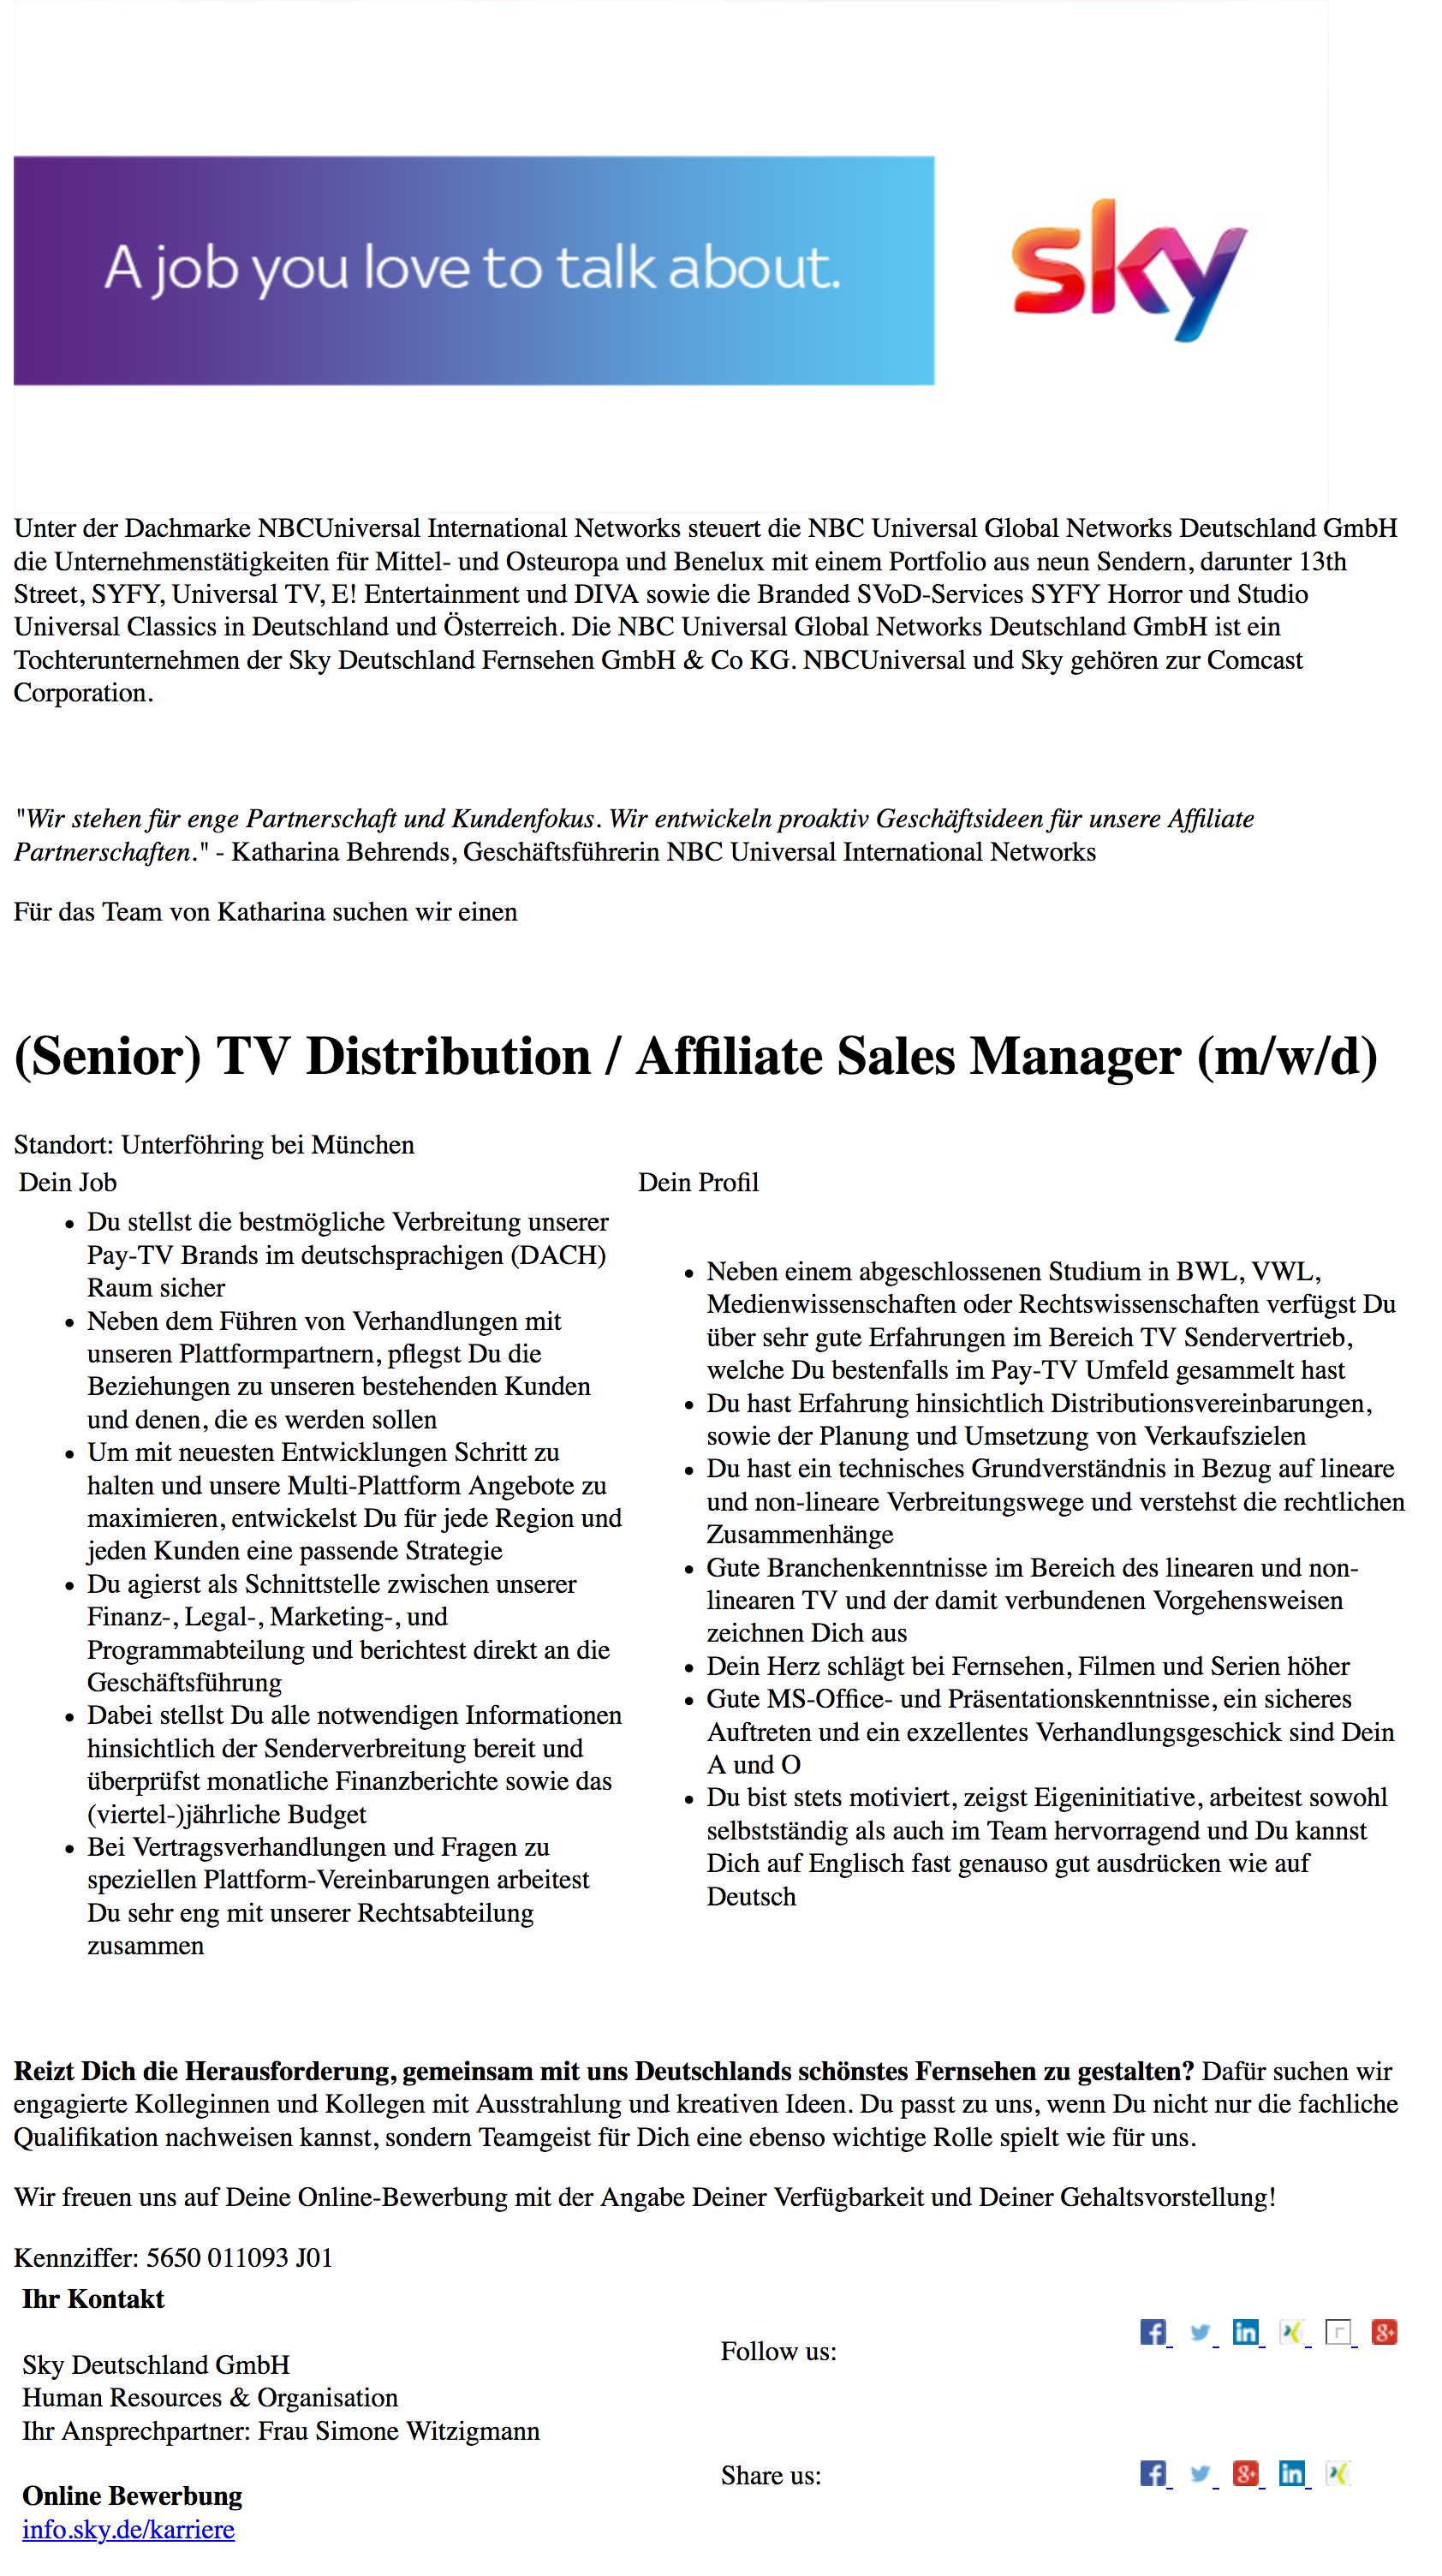 (Senior) TV Distribution / Affiliate Sales Manager (m/w/d)